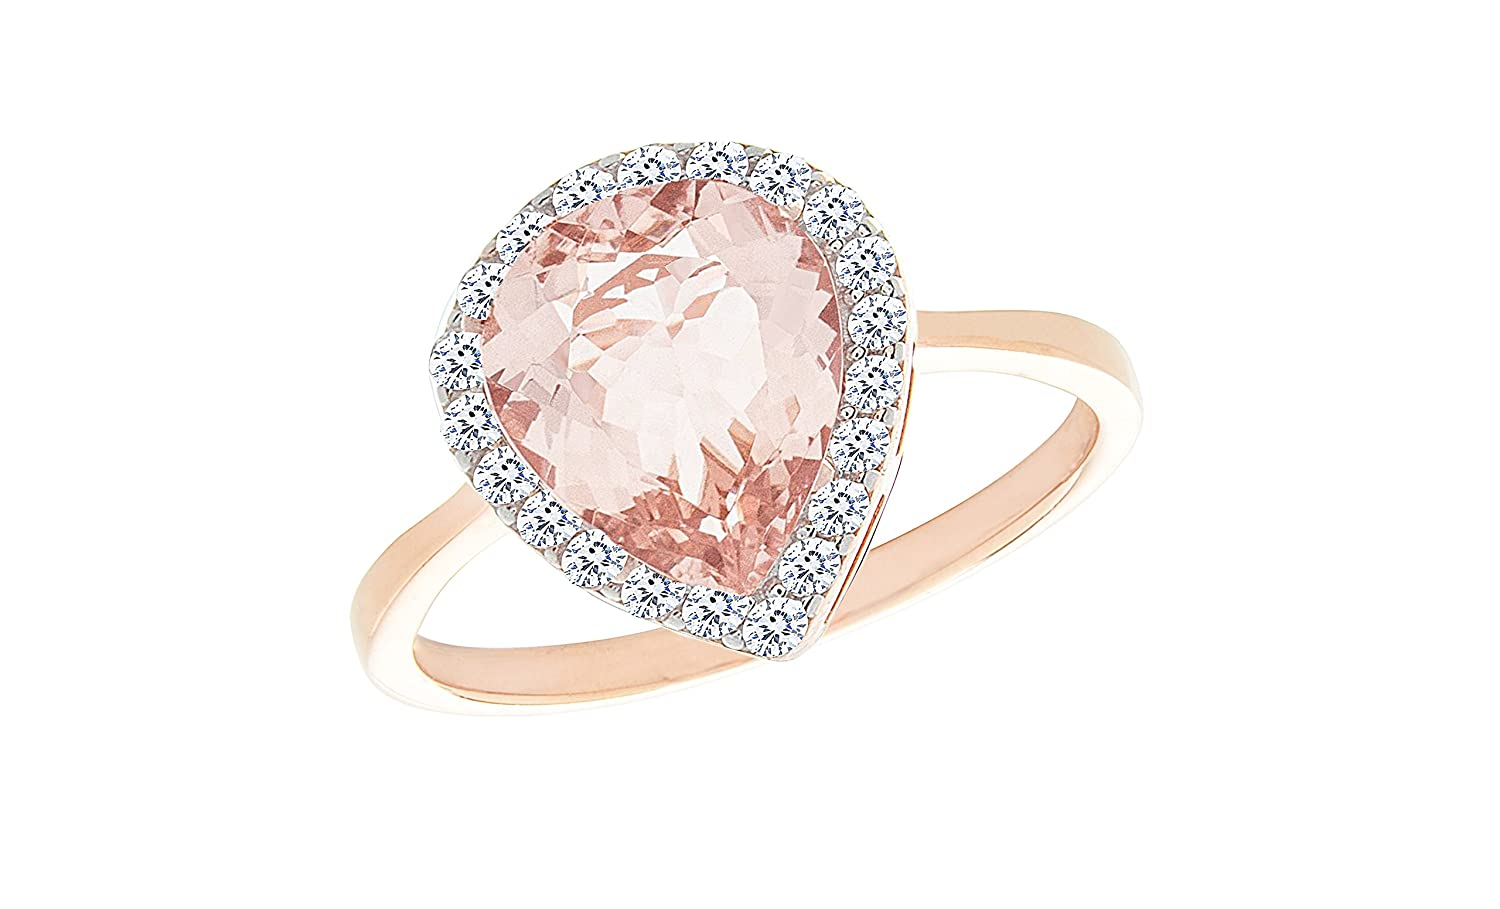 NYC Sterling Teardrop Pear Halo Cubic Zirconia Simulated Morganite Ring